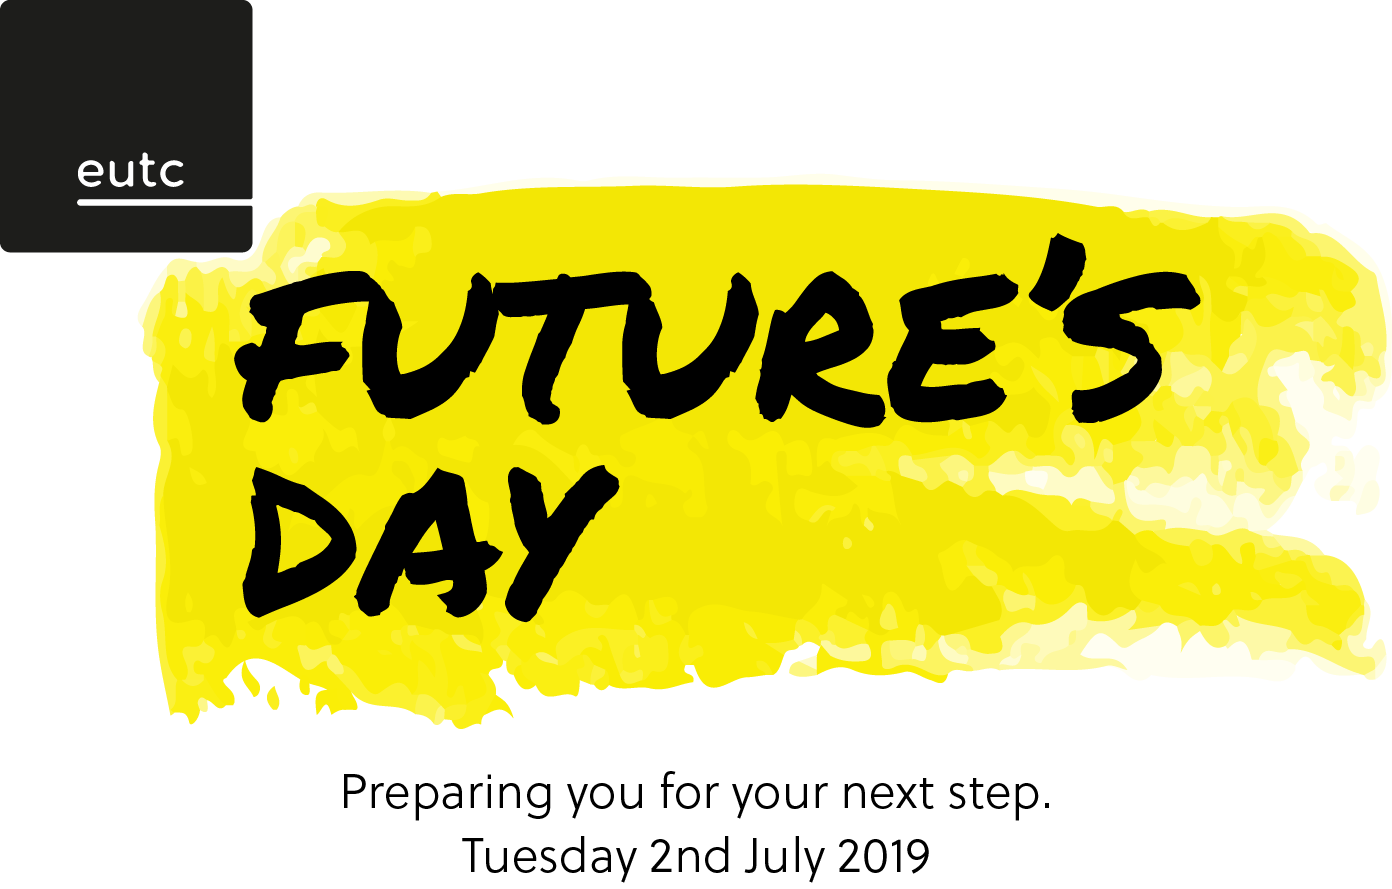 FuturesDay_Sq_Sp Asset@2x.png